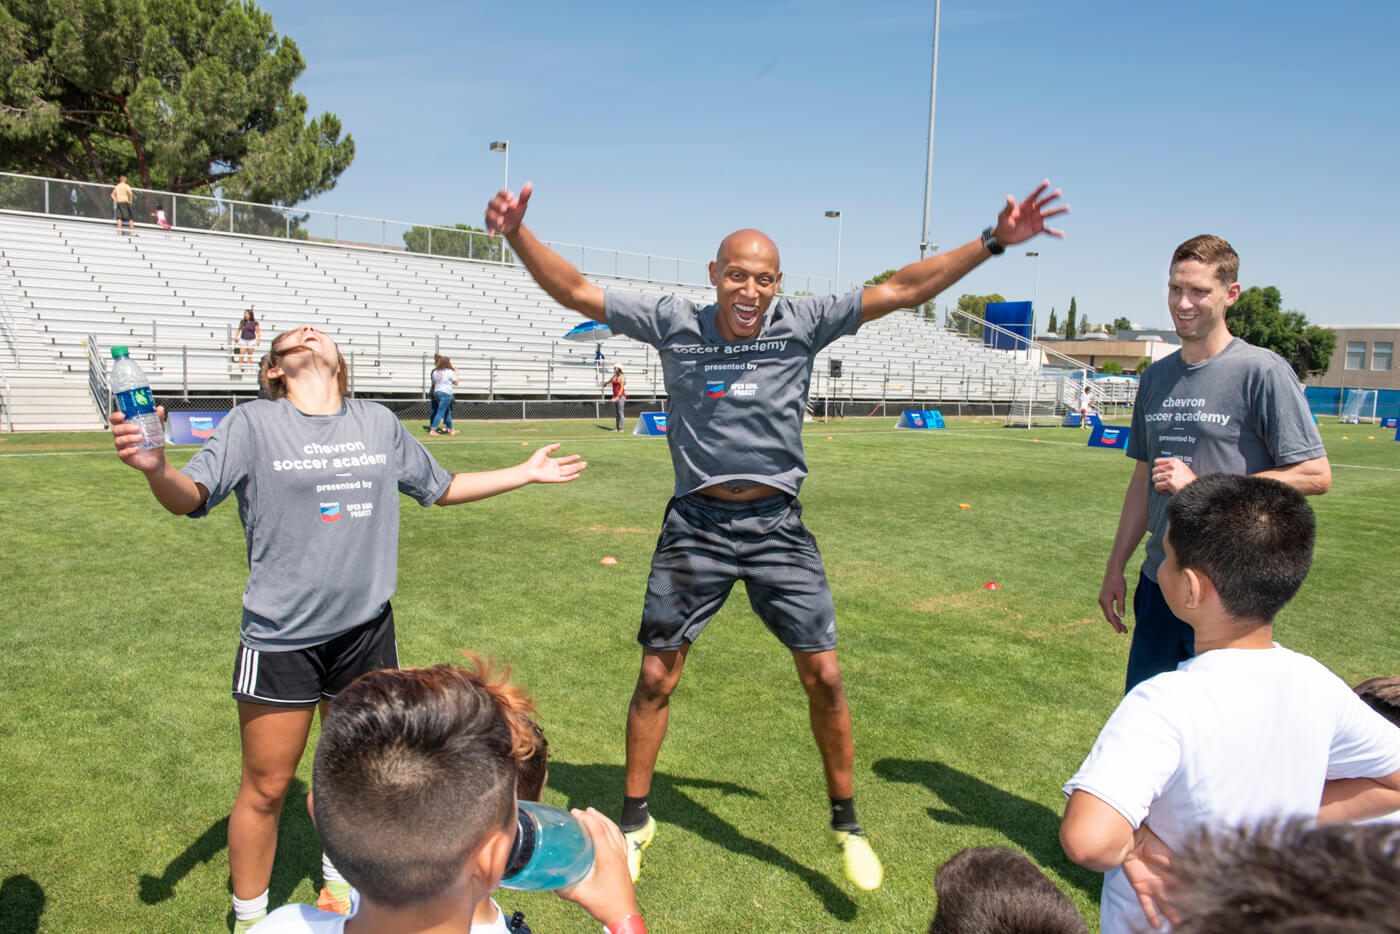 real moments at soccer camp event.